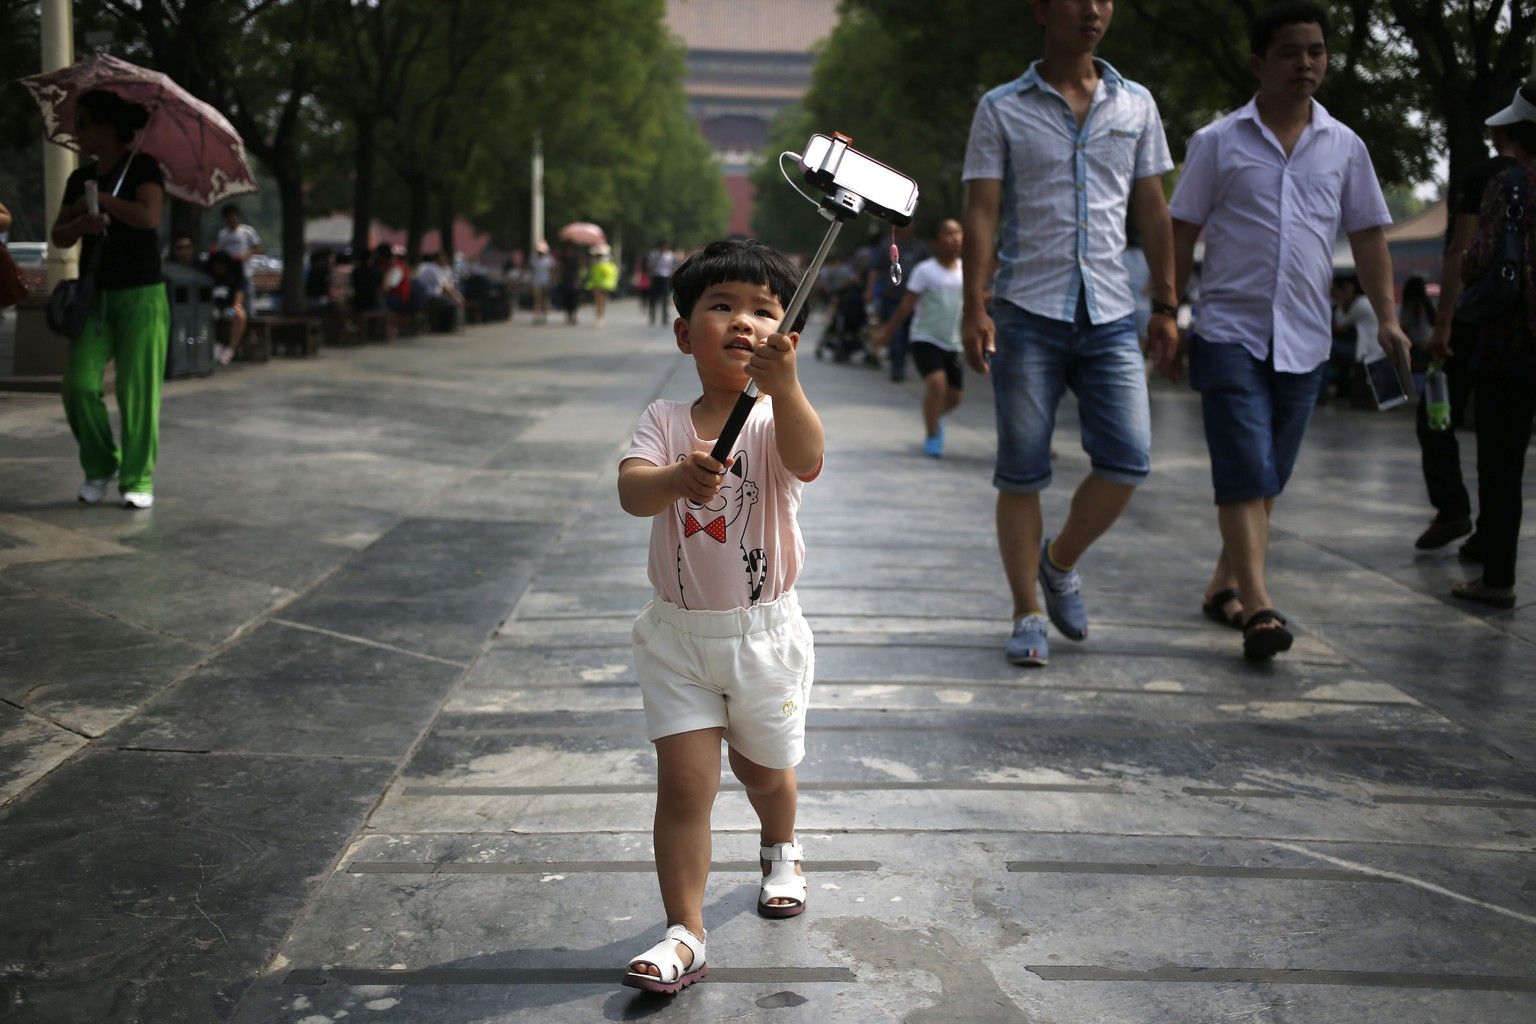 epaselect epa04778377 A Chinese boy takes a photo with a mobile phone on a selfie stick in the Forbidden City or the Palace Museum on Children's Day in Beijing, China, 01 June 2015. Normally closed on Monday, the Forbidden City opens its doors free for children under 14 in celebration of International Children's Day on 01 June.  EPA/HOW HWEE YOUNG